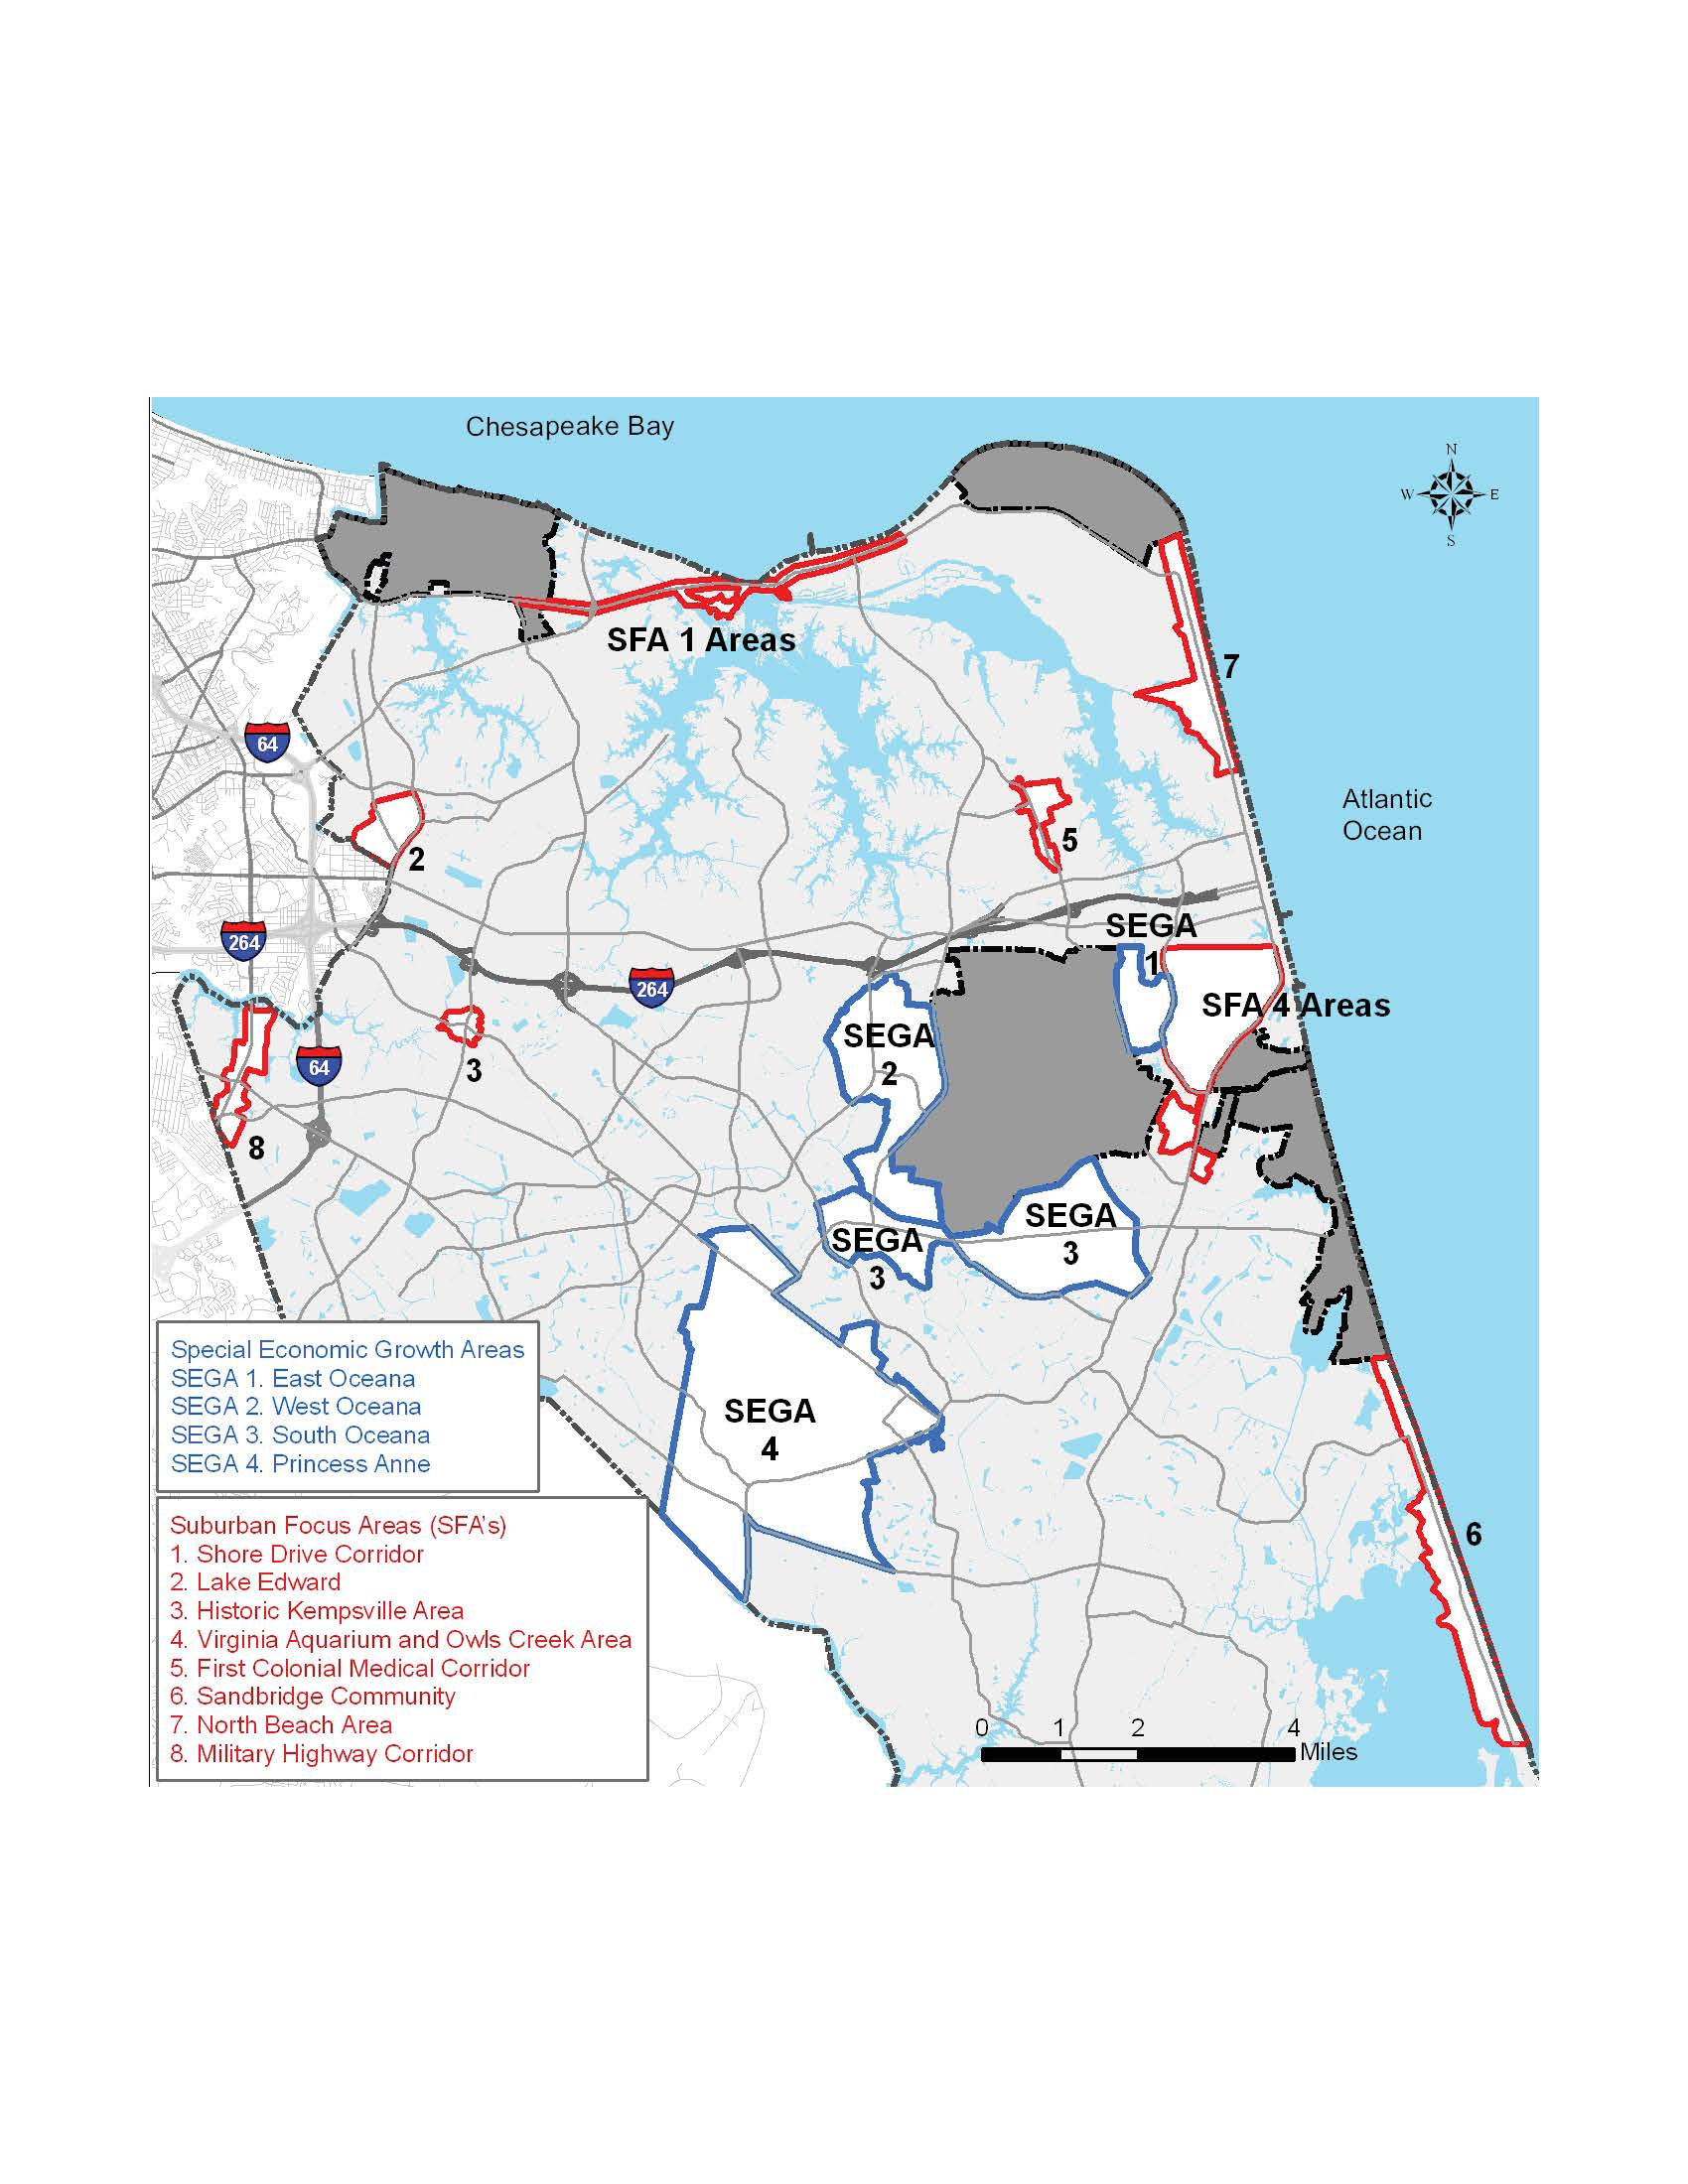 suburban focus areas (sfas) and special economic growth areas (segas) map. maps  vbgovcom  city of virginia beach